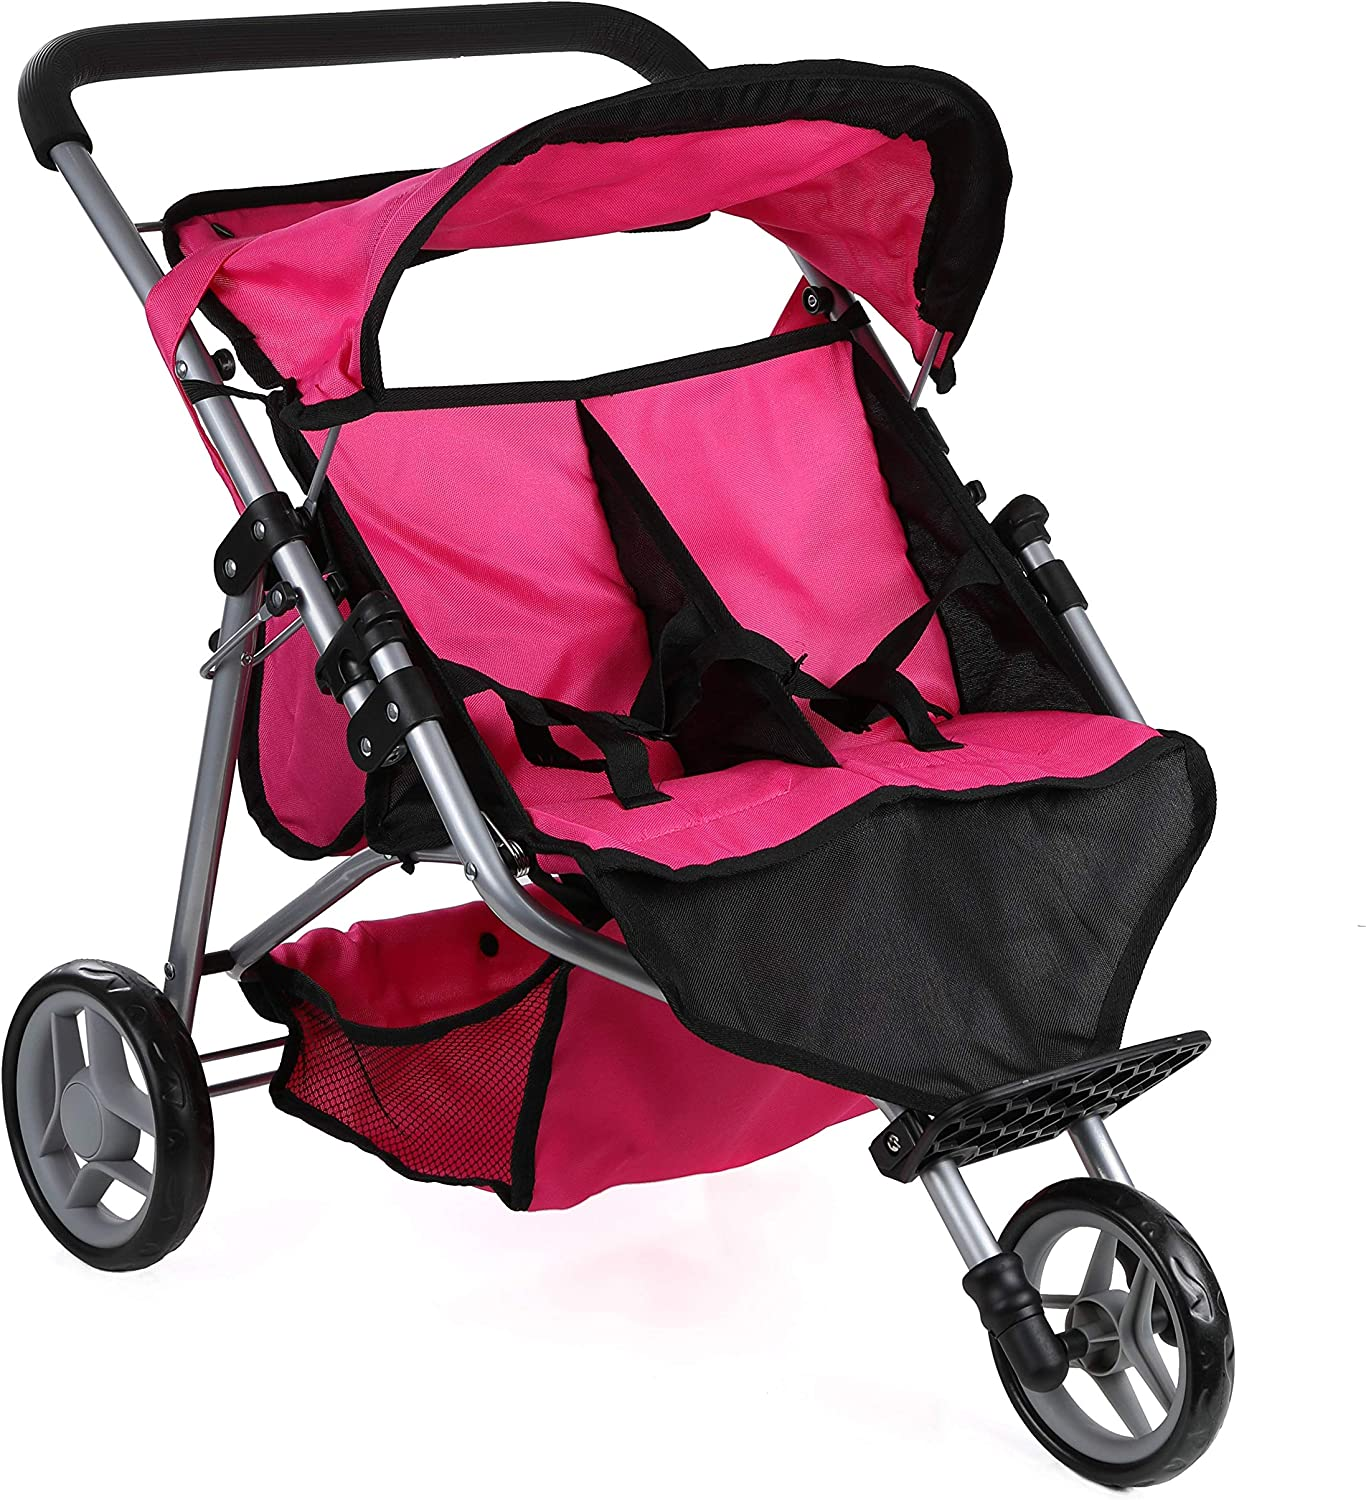 Mommy & Me Twin Doll Jogger 9367B with Free Sports Bag